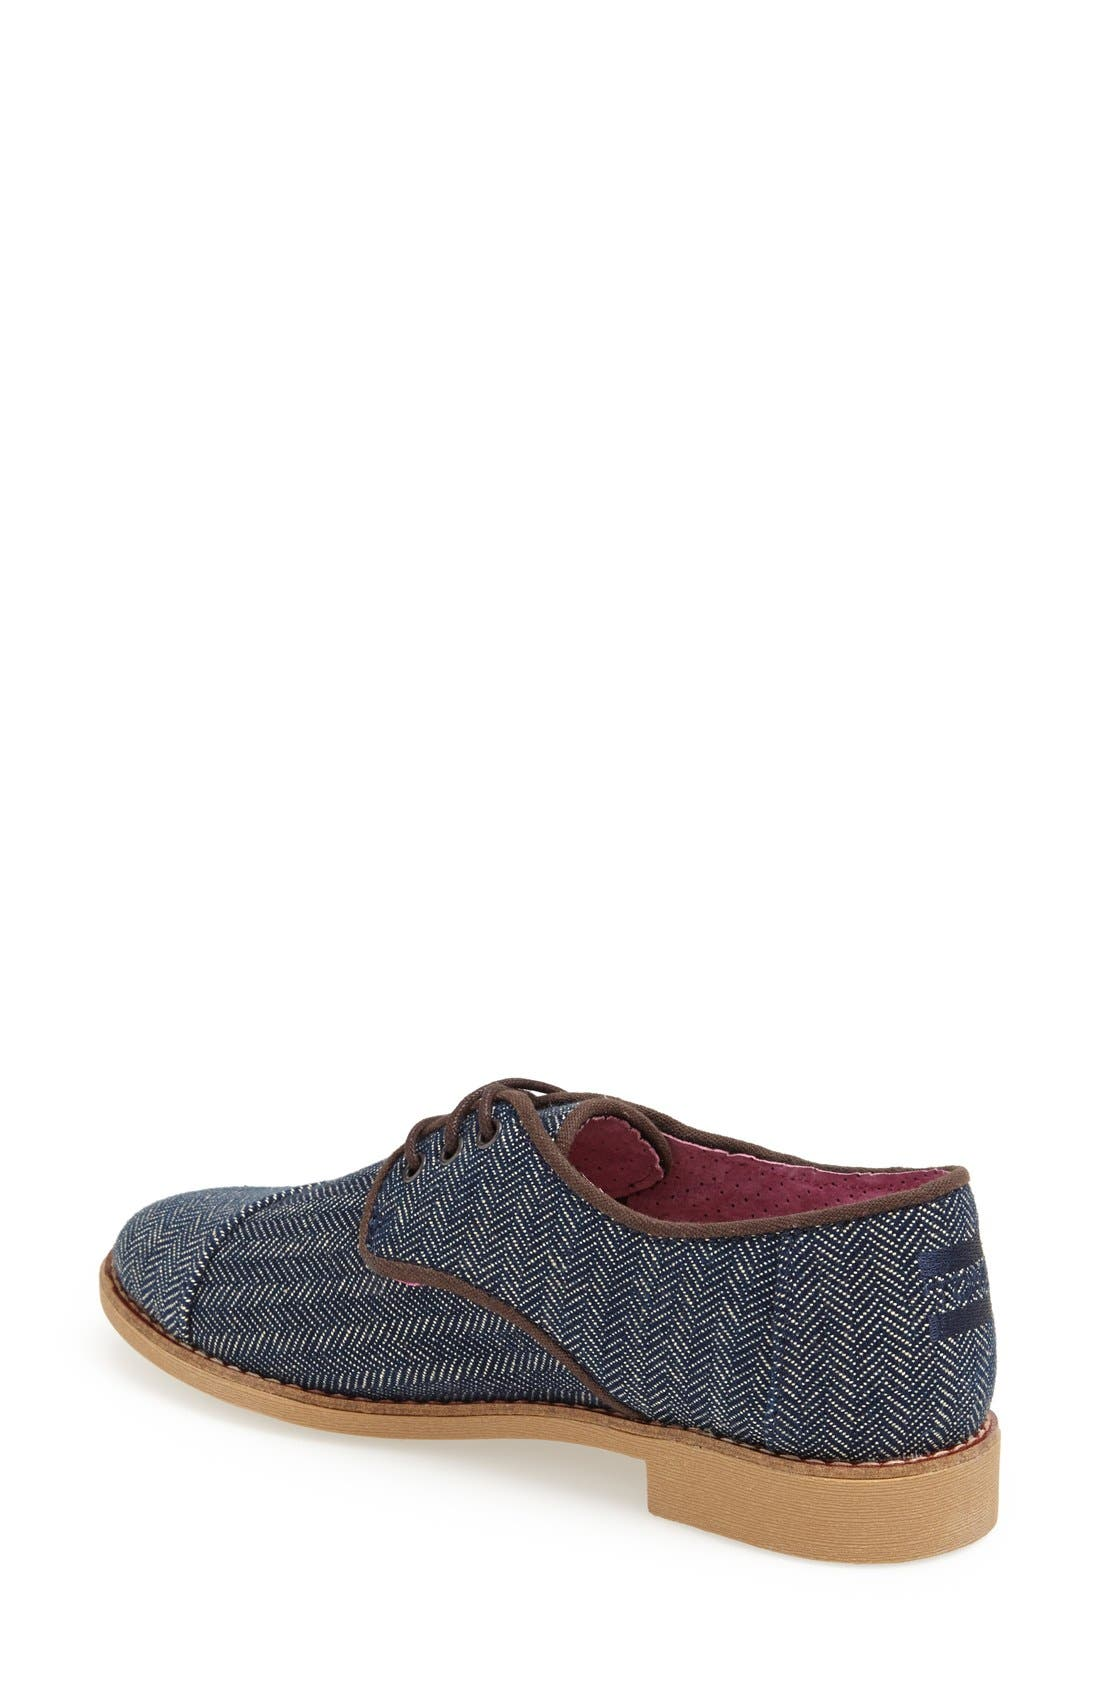 Alternate Image 2  - TOMS 'Brogue' Oxford (Women)